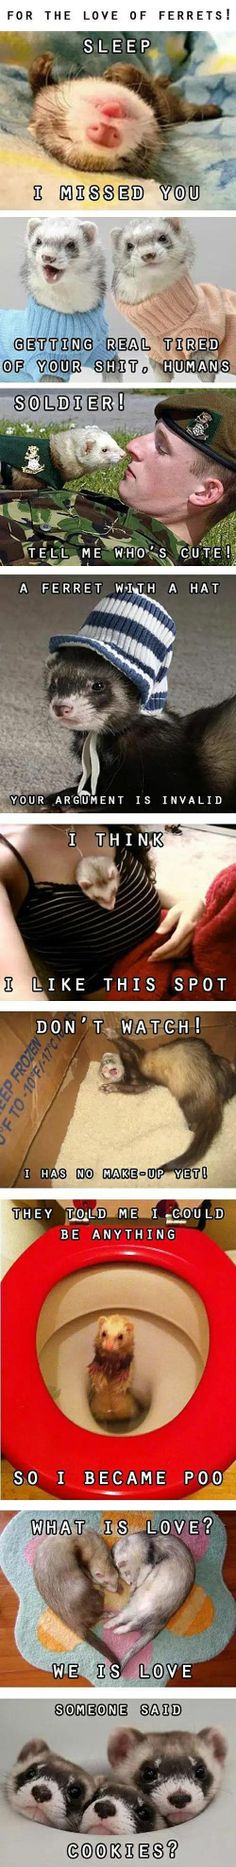 Cute ferrets  // funny pictures - funny photos - funny images - funny pics - funny quotes - #lol #humor #funnypictures